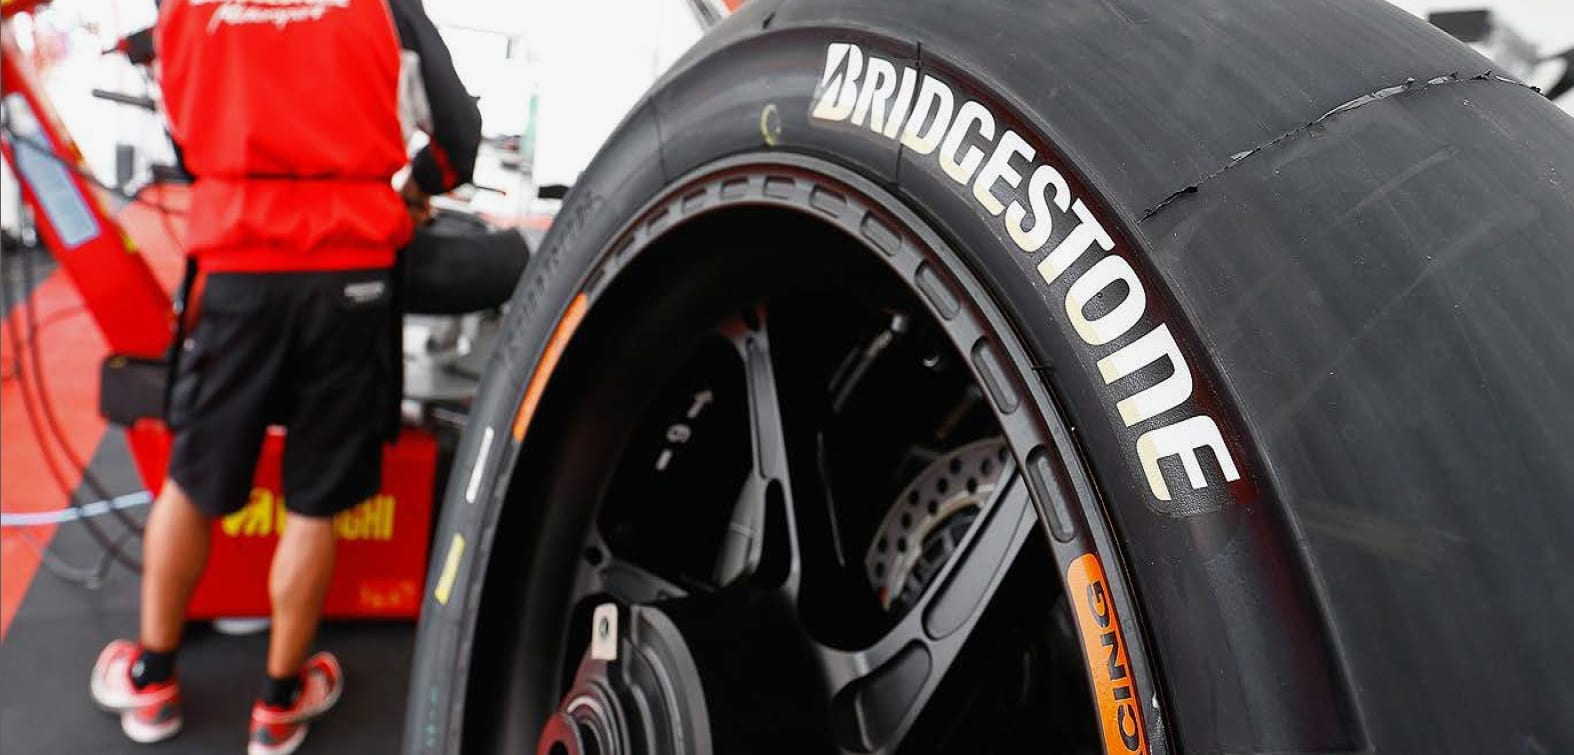 bridgestone case Detroit — bridgestone corp and toyo tire & rubber co have agreed to   attorneys for the plaintiffs in the case filed the agreement oct 9.